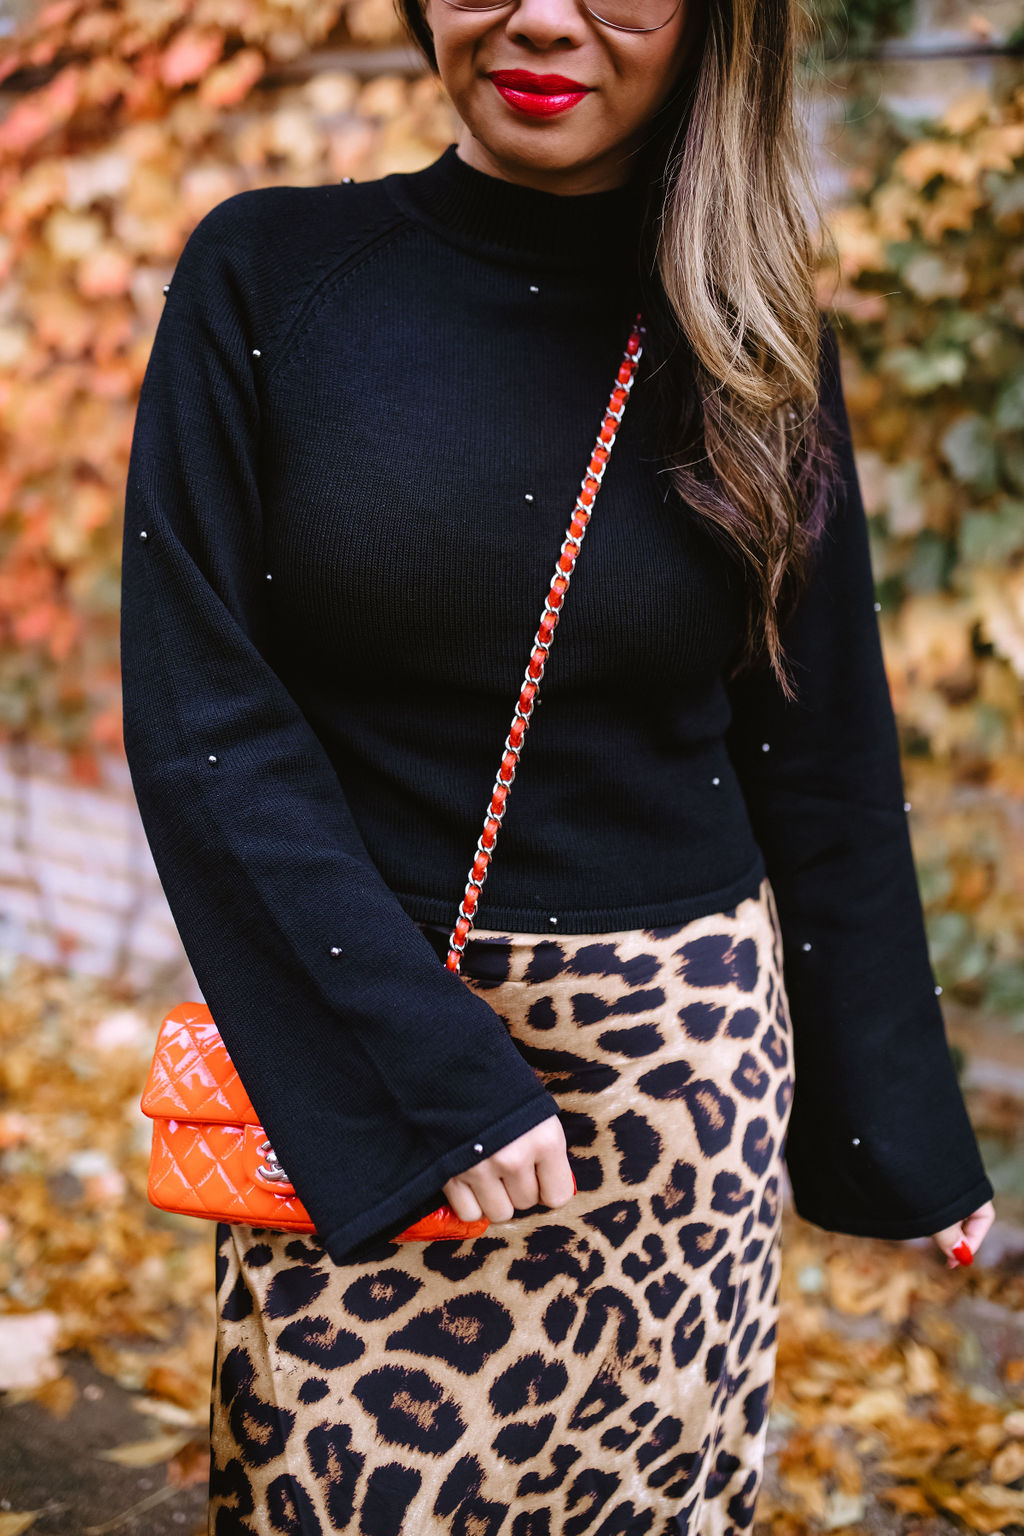 Jennifer Worman, Red Soles and Red Wine, revolve finds under $150, sweaters from revolve all under $150, Fall styles, fall outfit ideas, sweaters under $150, best sweaters under $150, 9 must-have sweaters under $150, revolve babe, fall 2019 must haves, fall 2019 style, mom style, chicago blogger NBD Jeff Sweater